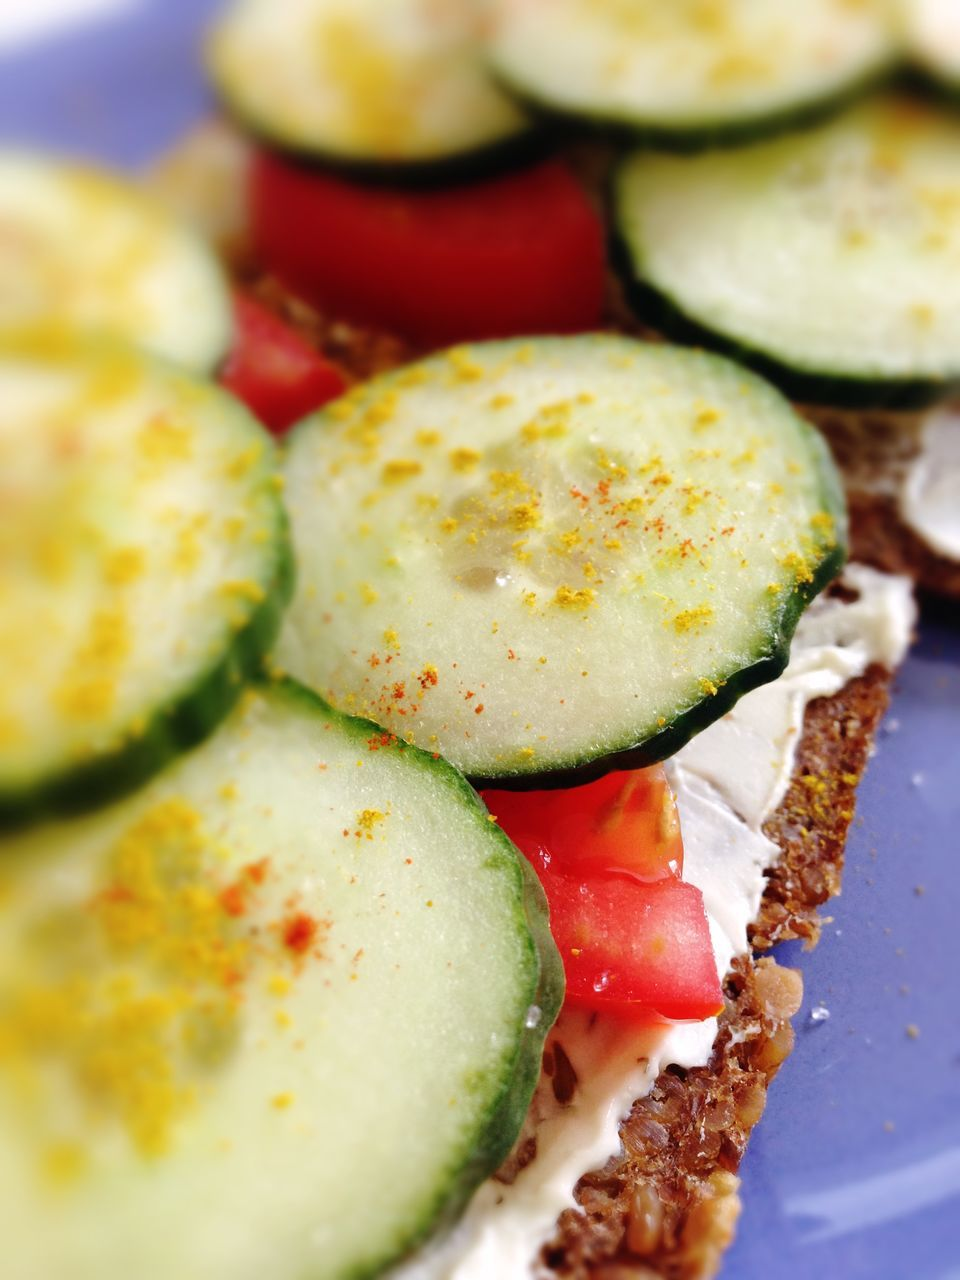 food and drink, food, ready-to-eat, vegetable, healthy eating, tomato, freshness, cucumber, indoors, plate, slice, salad, sandwich, serving size, meal, close-up, bread, no people, appetizer, gourmet, snack, day